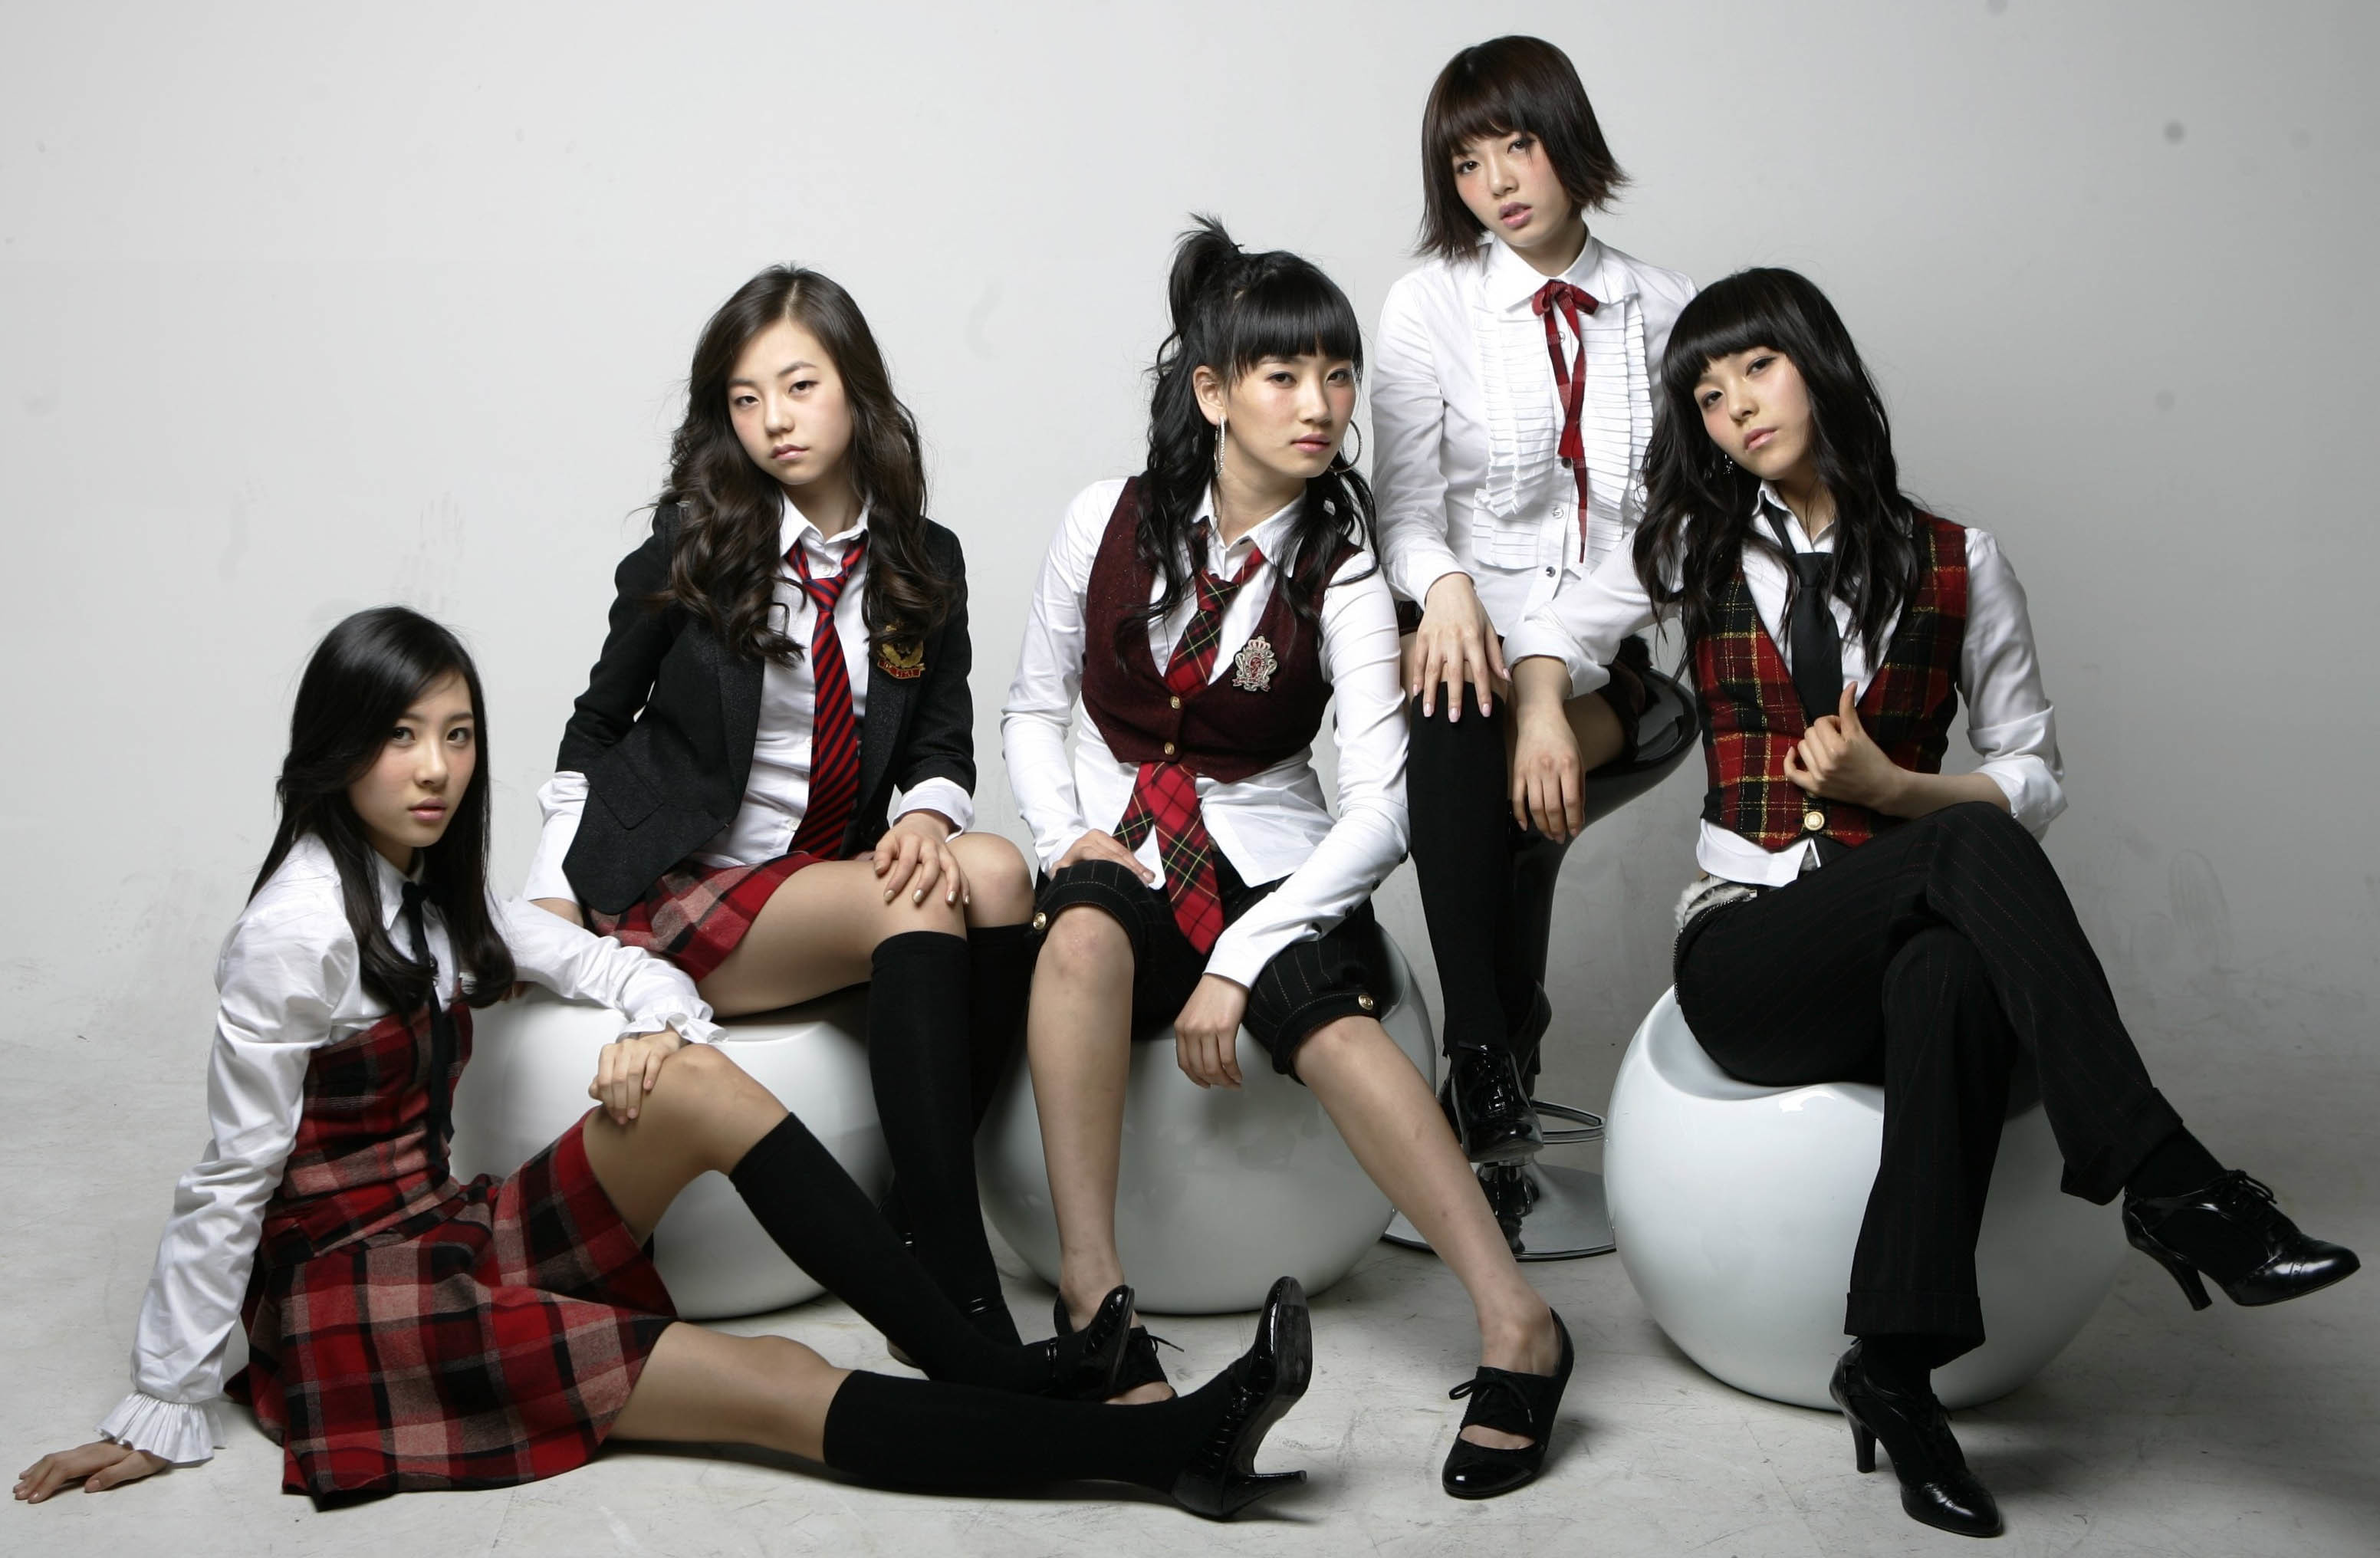 Wonder girl korean band, nude harvard coeds